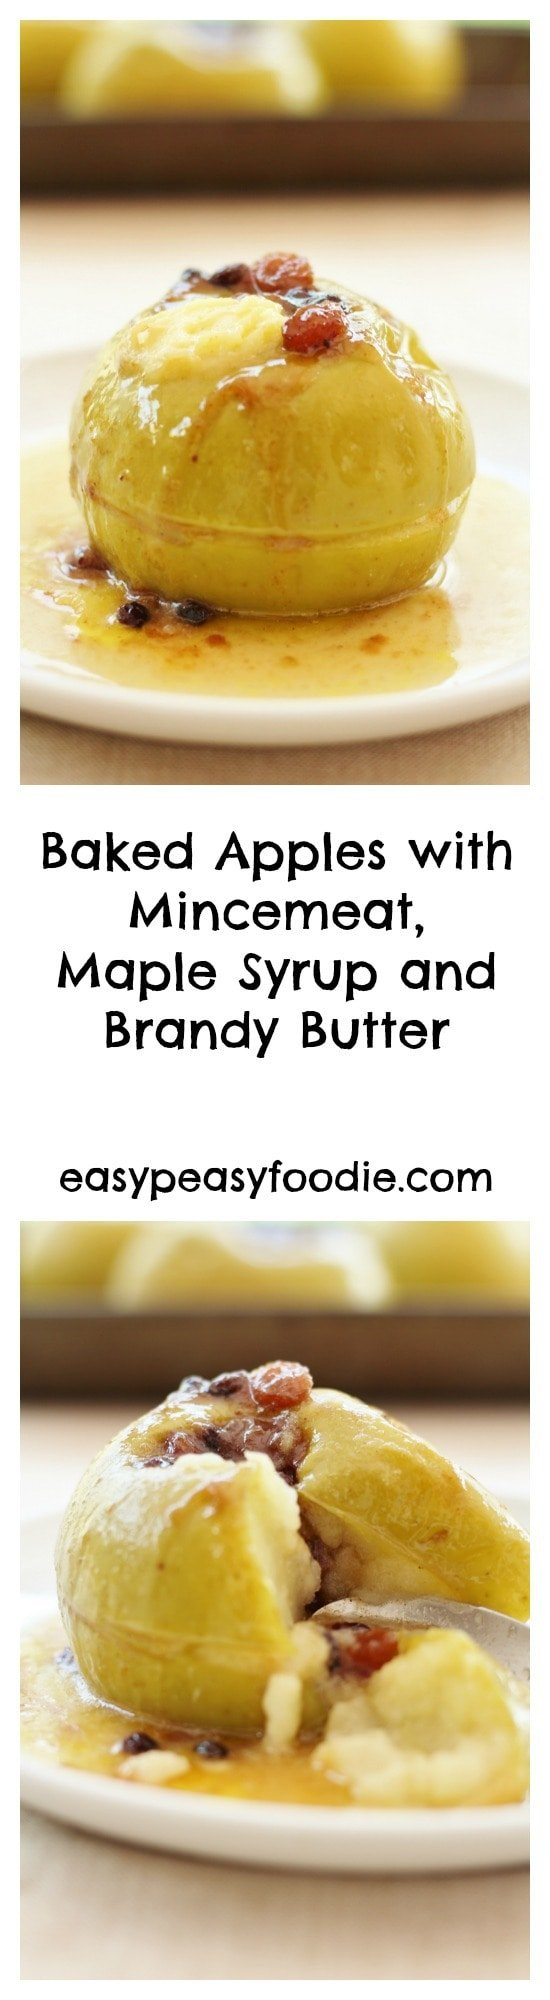 Baked Apples with Mincemeat, Maple Syrup and Brandy Butter - pinnable image for Pinterest